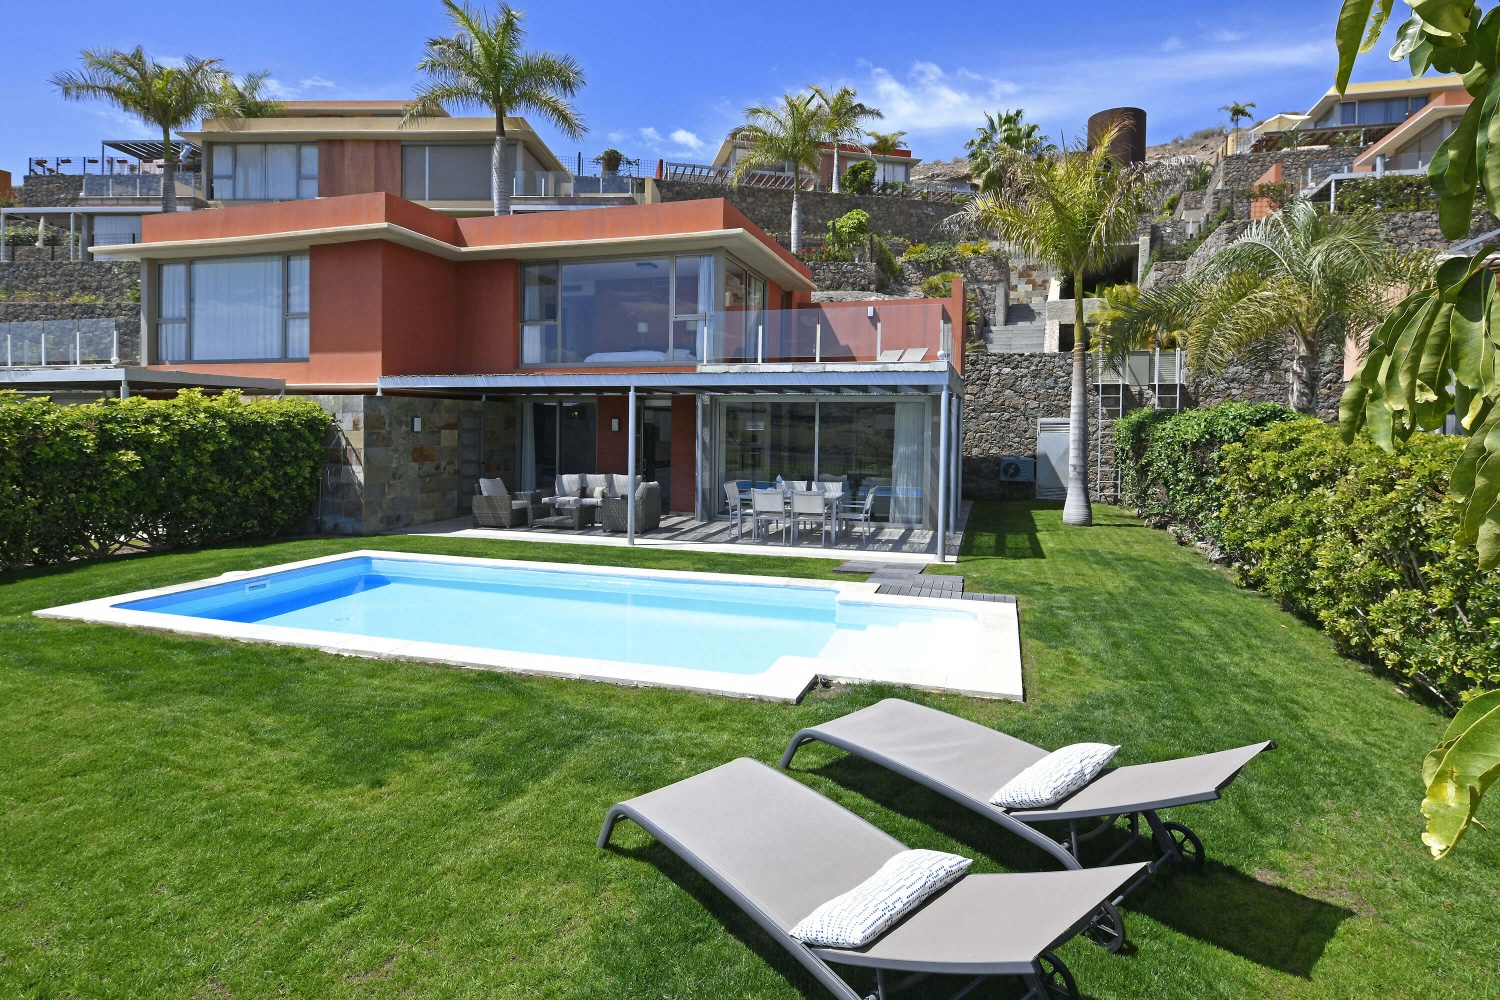 Stylish villa directly on the golf course with a modern interior, garden with private pool and a beautiful view